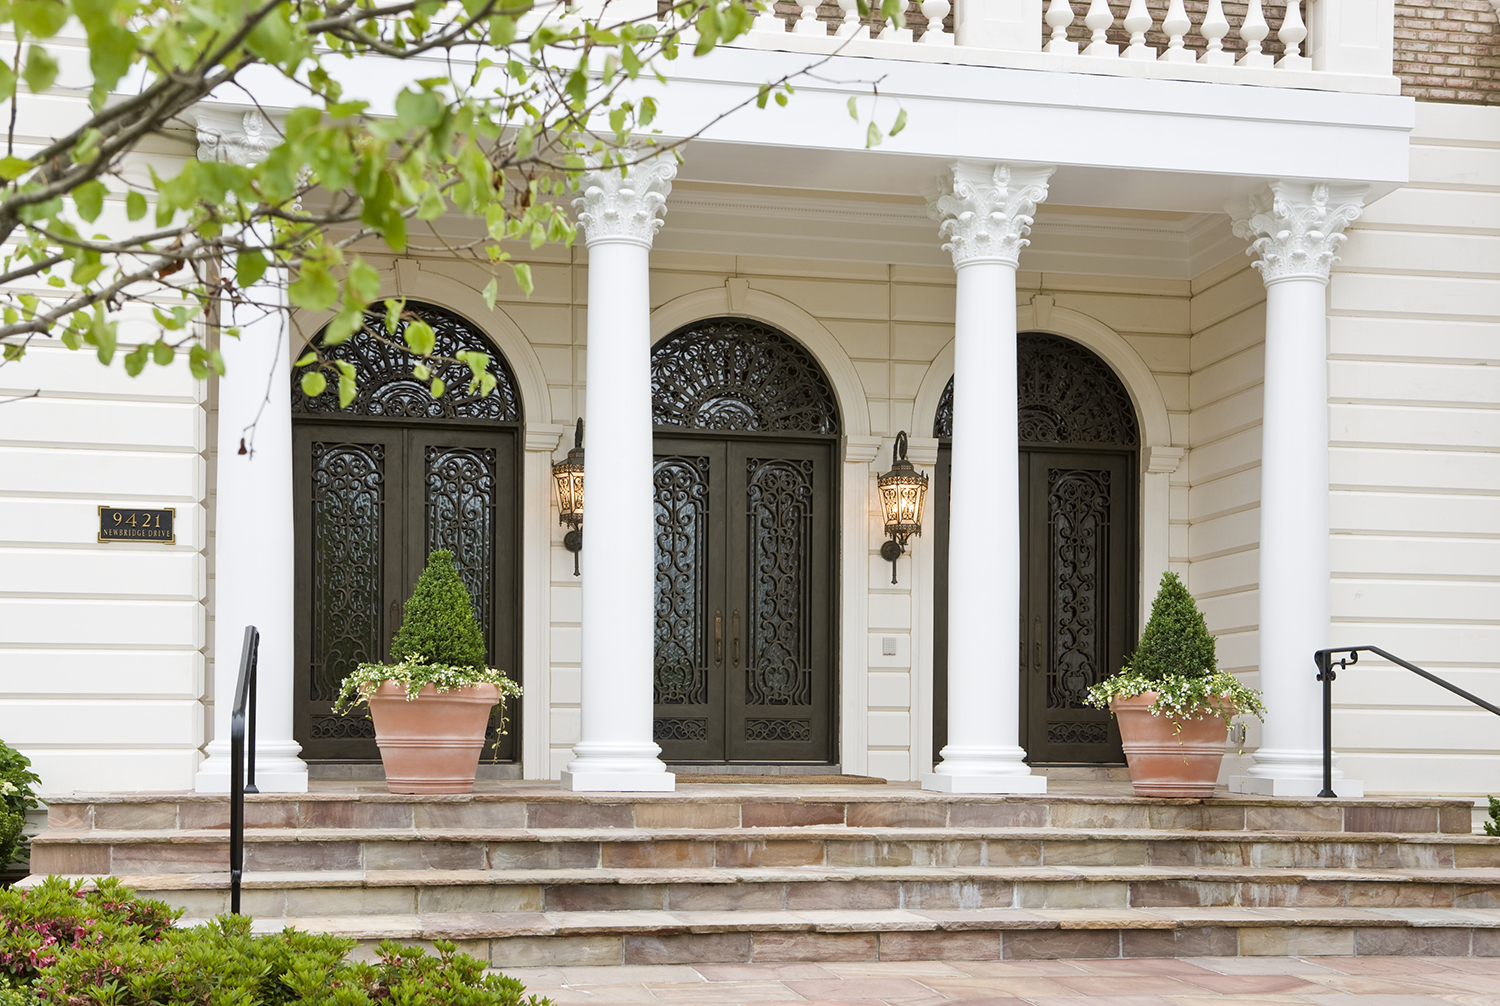 The entrance of a home with 4 white columns and three front doors.